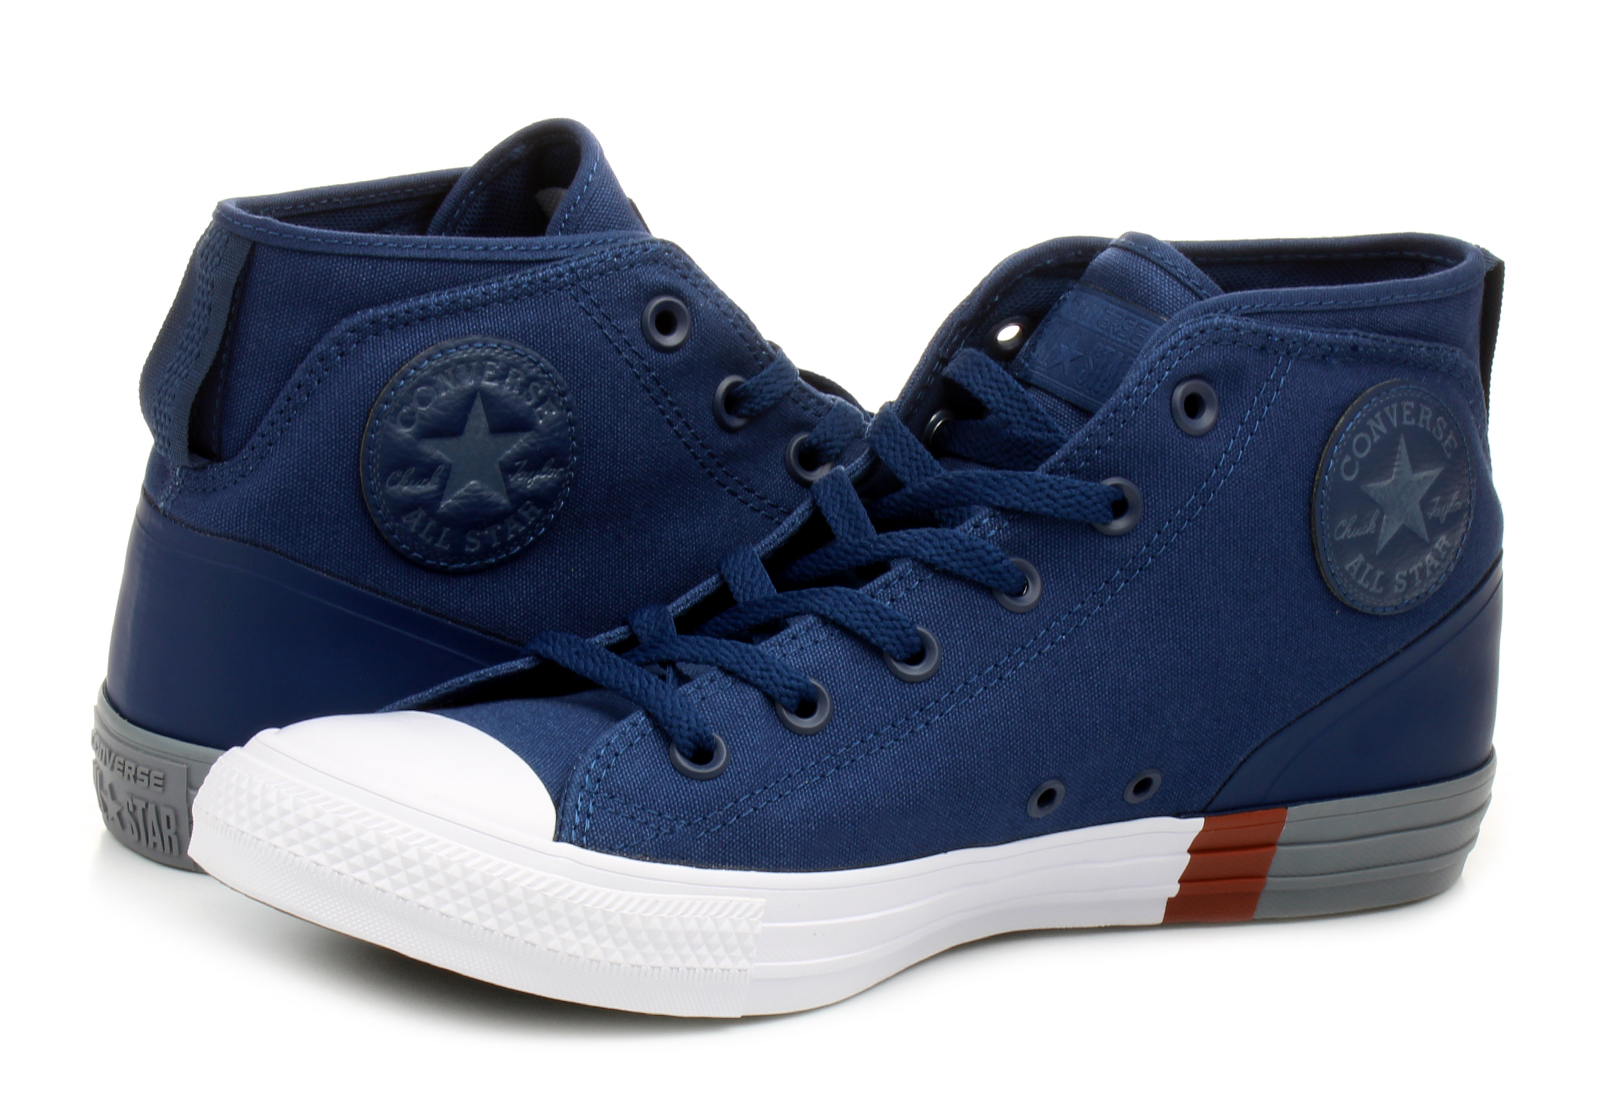 028ed75c7c0 Converse Sneakers - Chuck Taylor All Star Syde Street - 159553C ...